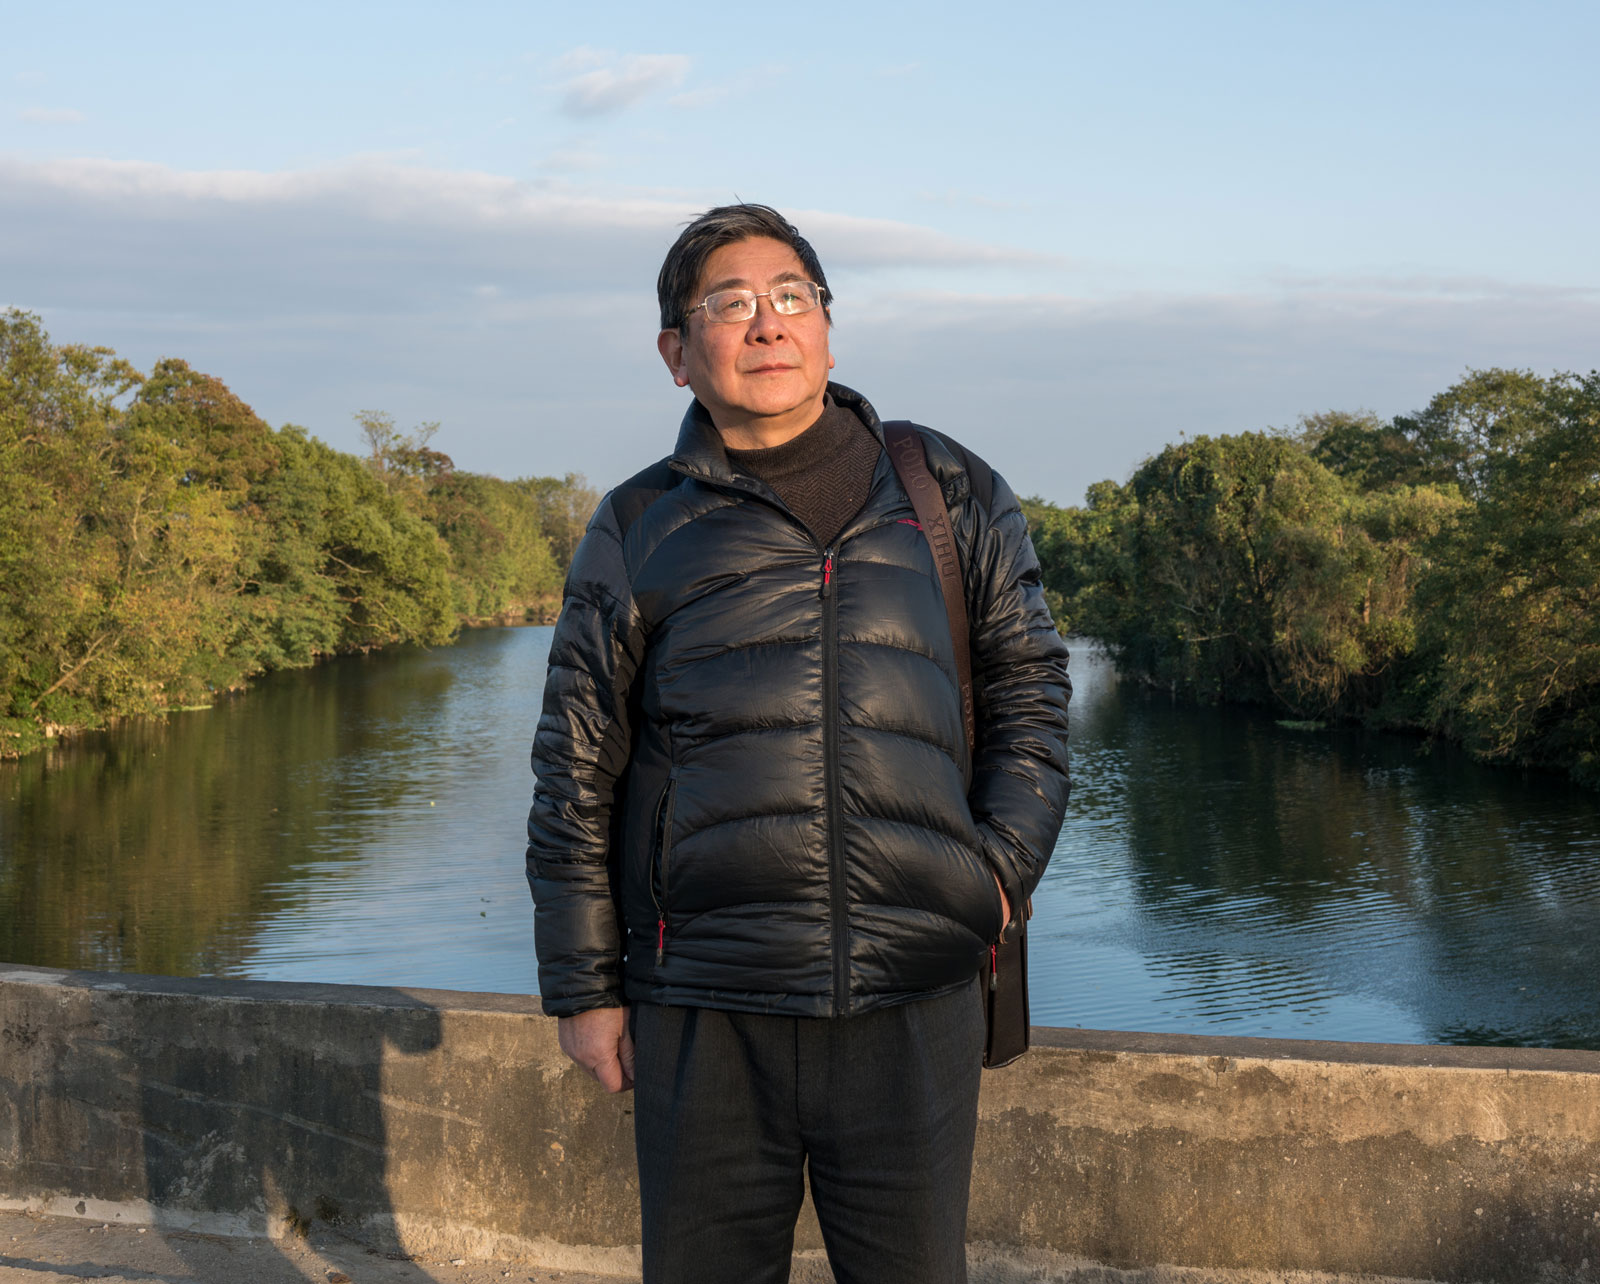 Tan Hecheng, author of The Killing Wind, on China's Cultural Revolution, at Widow's Bridge where many were murdered in the fall of 1967, November 2016